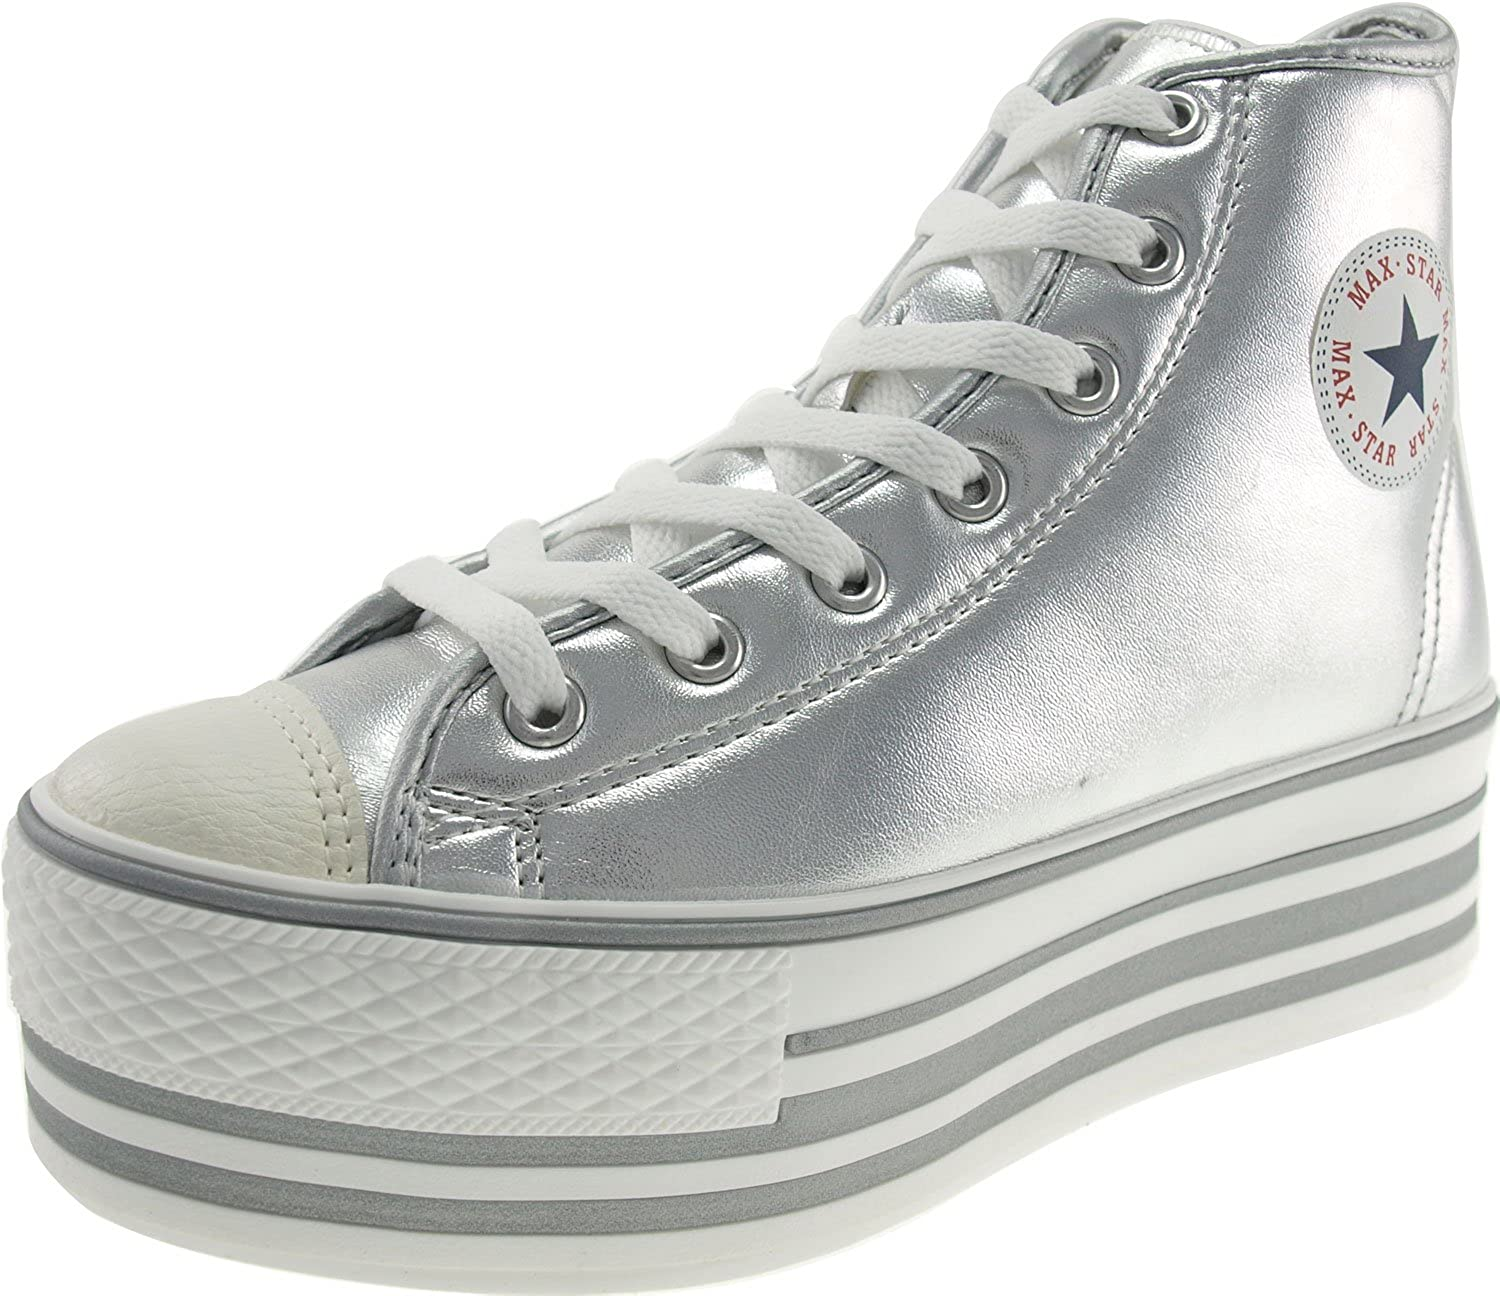 Maxstar Metalic colord High-top Platform Synthetic Leather Sneakers shoes